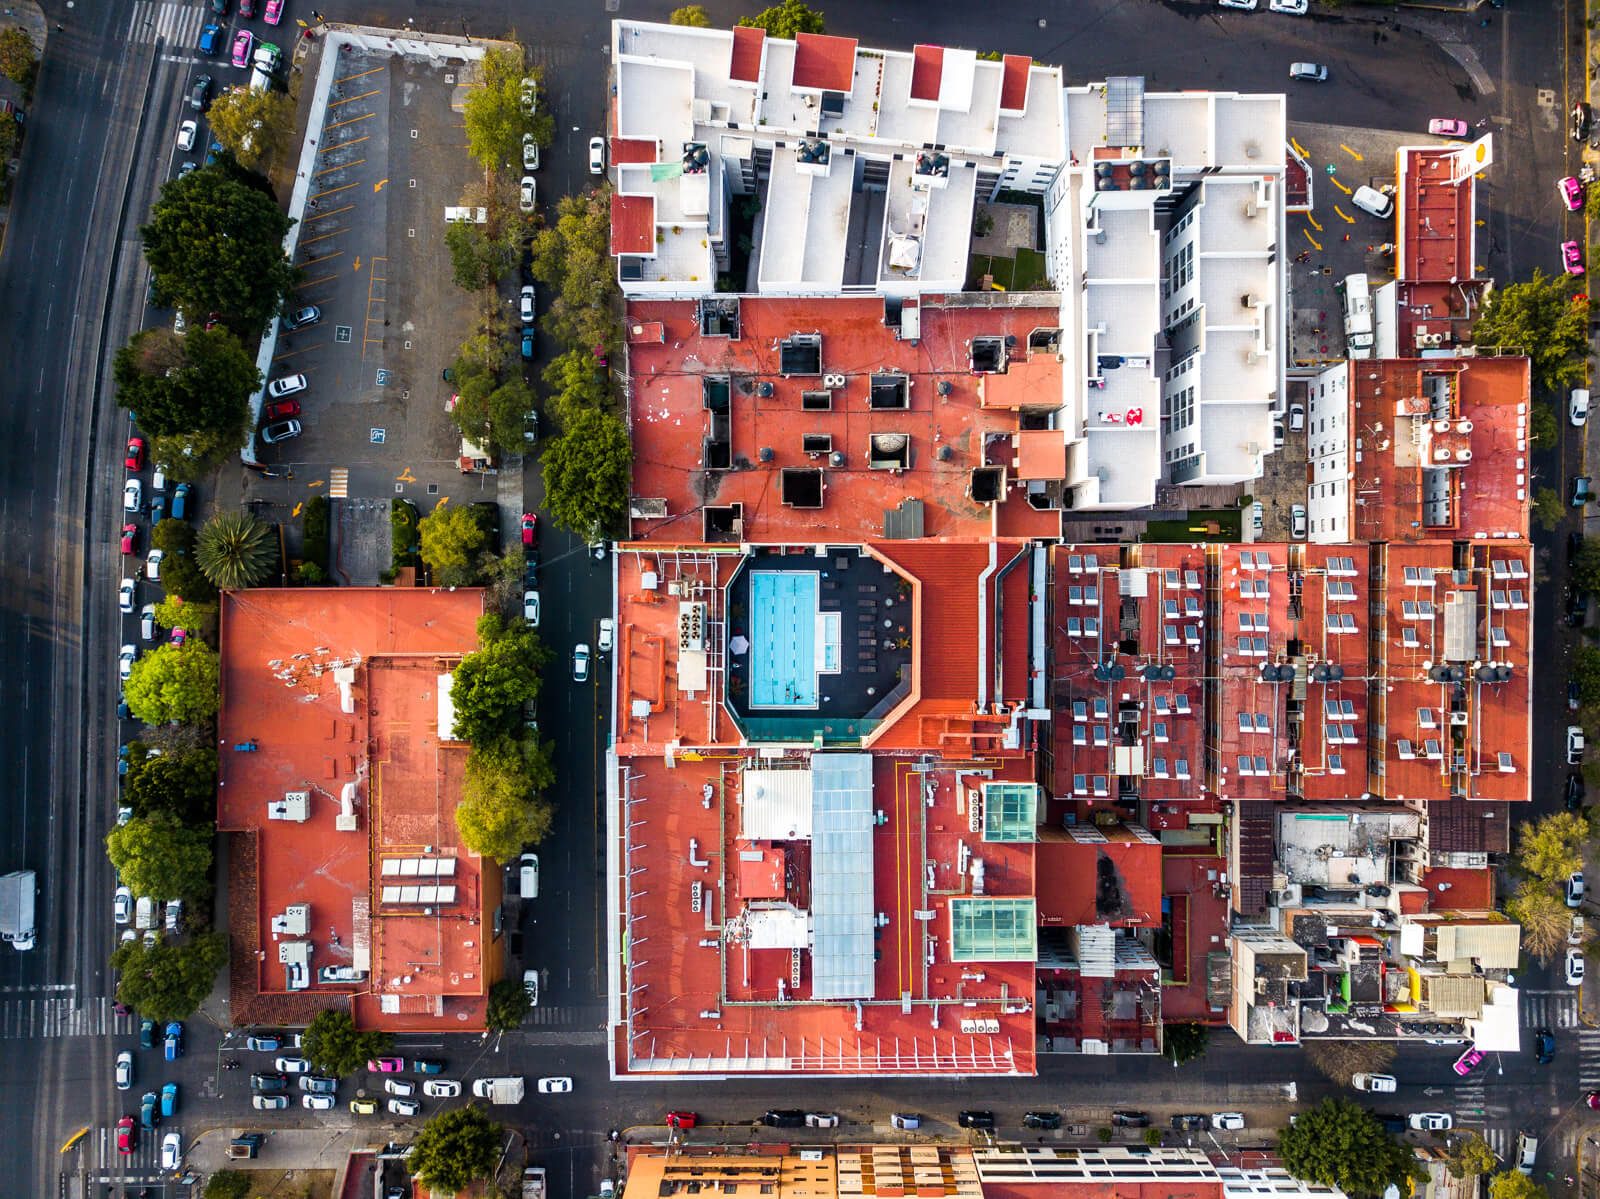 Holiday Inn Buenavista as seen from the Drone of Wonders Xochimilco Without a Tour